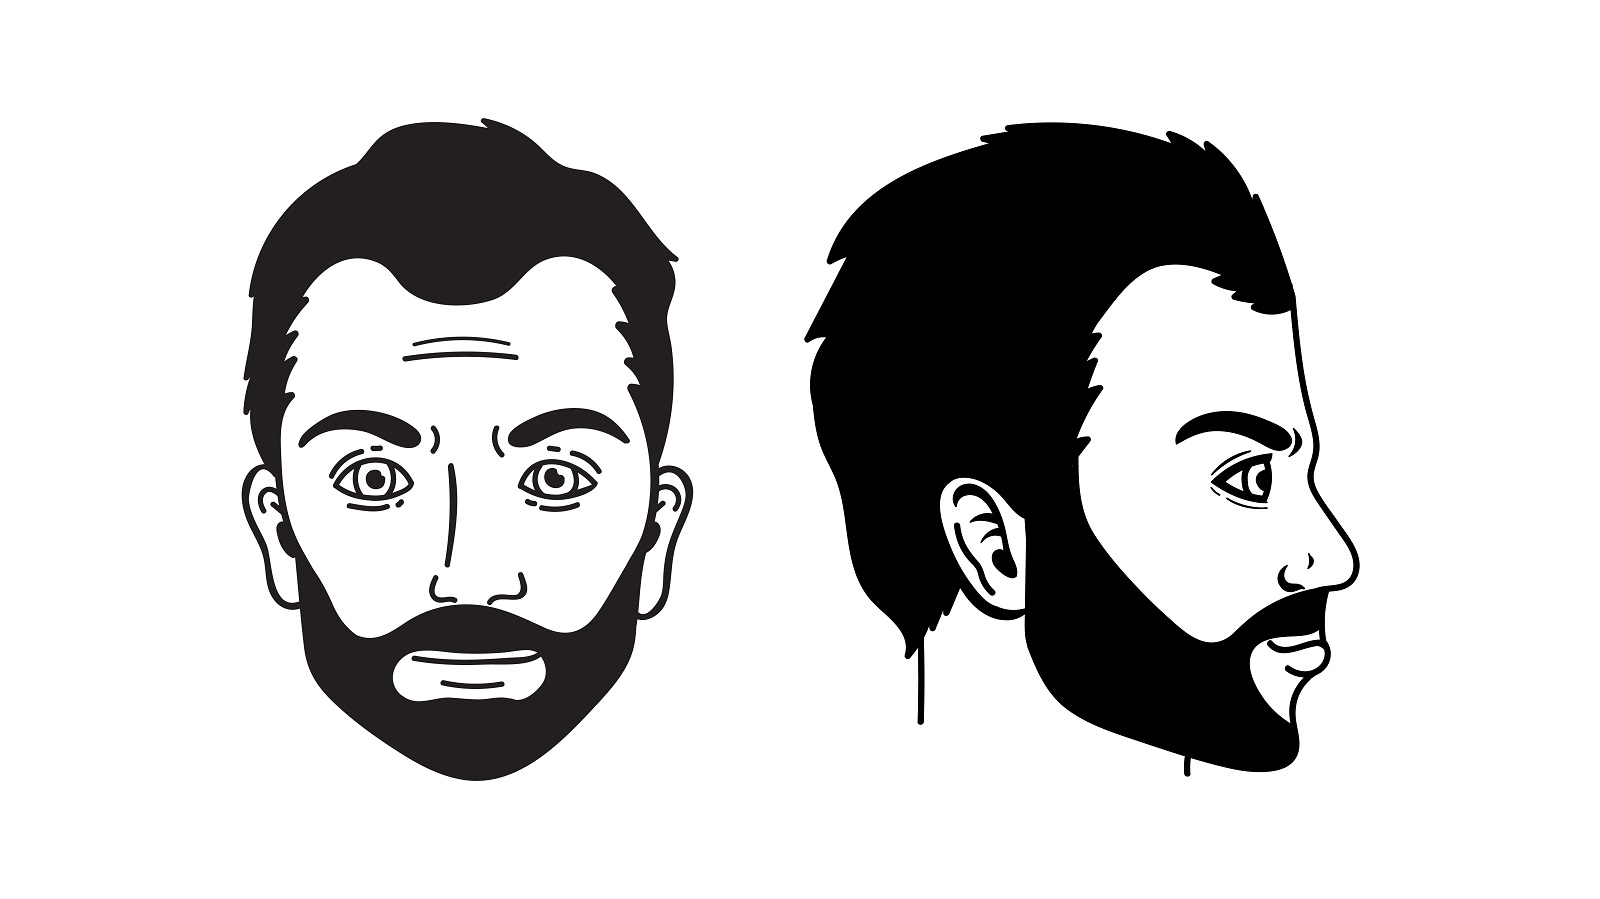 The Corporate Beard Facial Hair Style